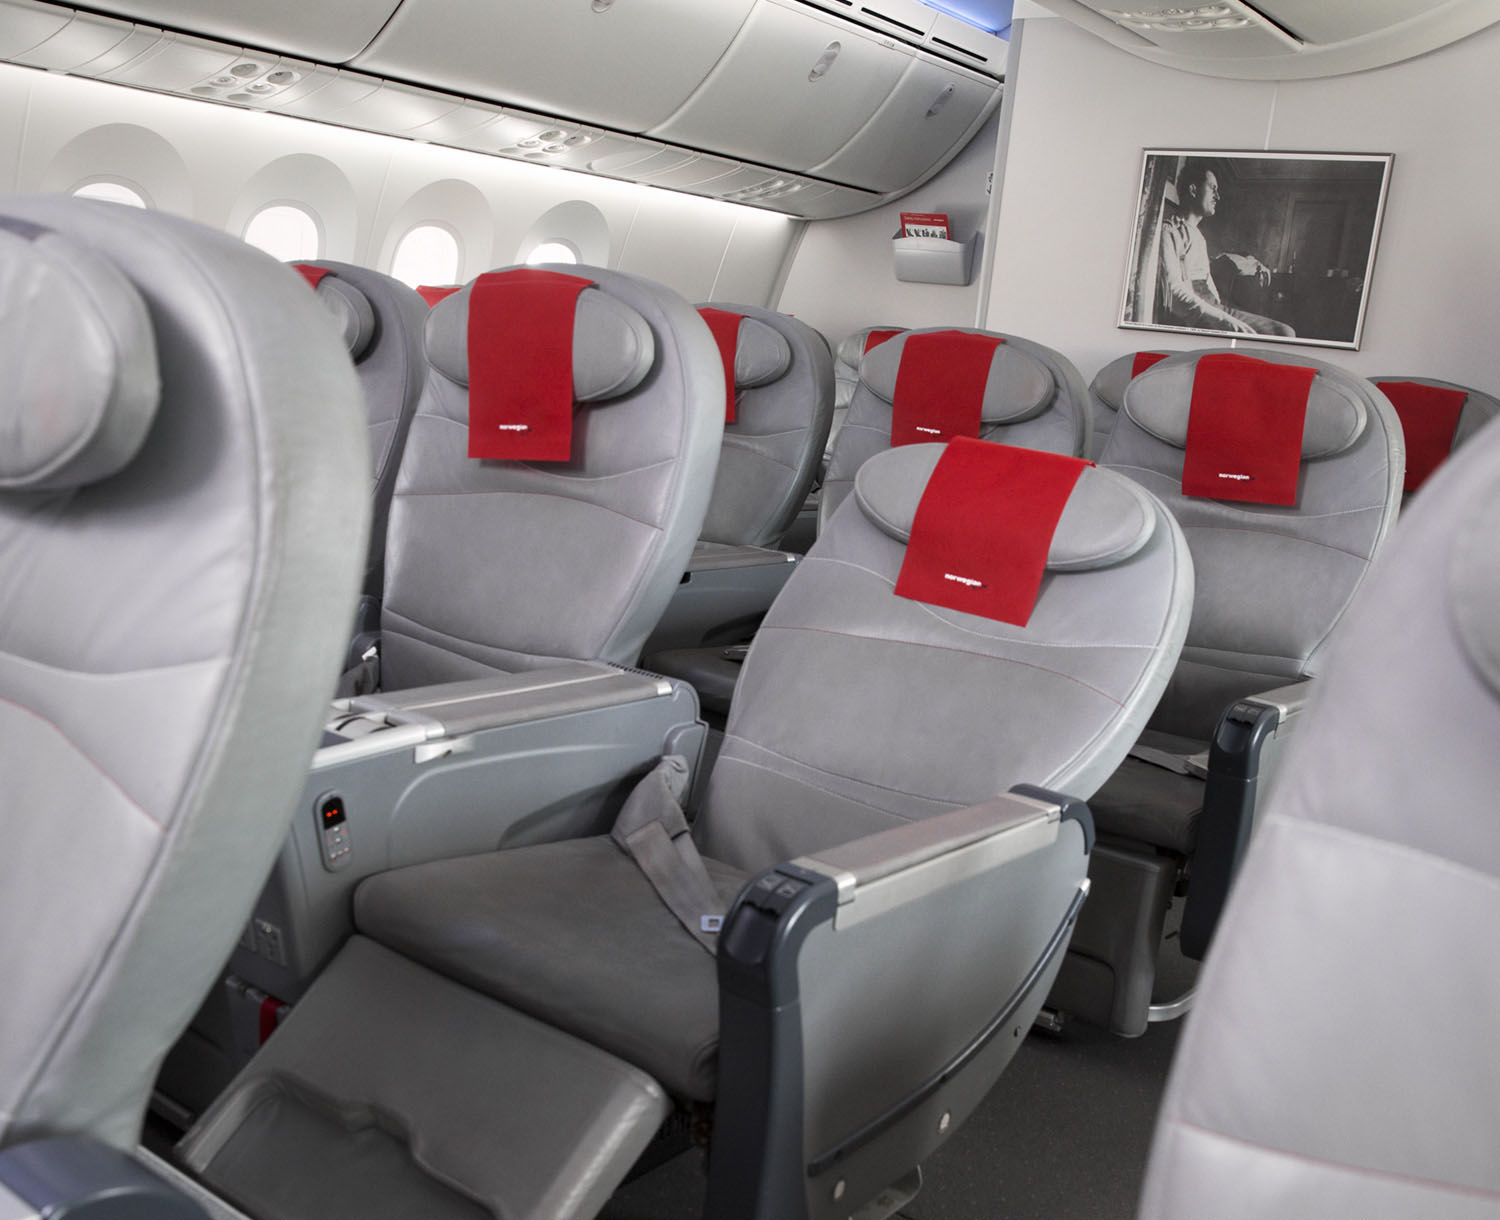 Norwegian Airlines Boeing 787 Dreamliner Premium Economy Review